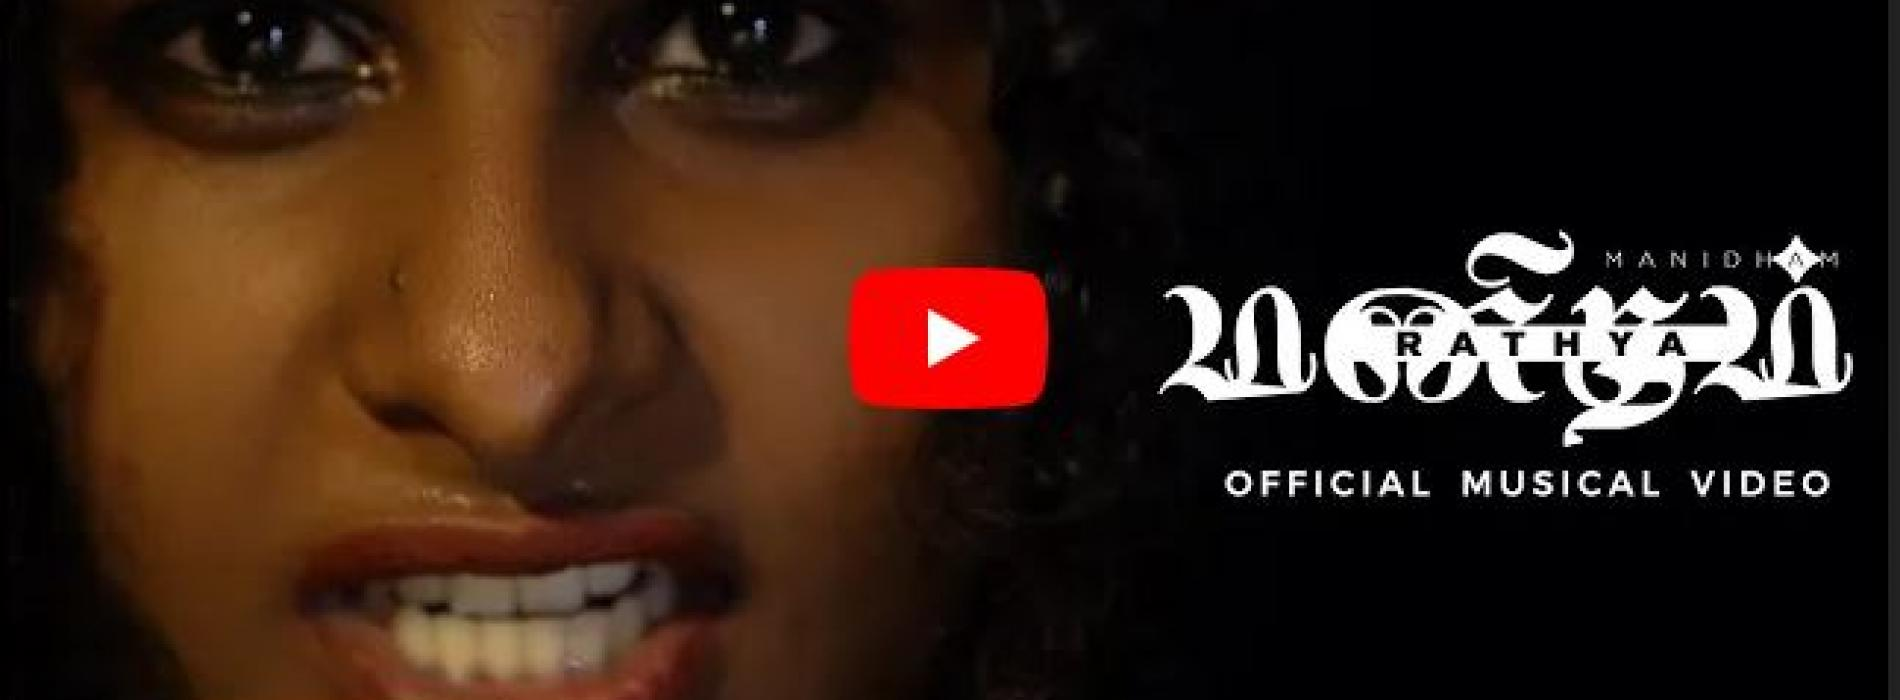 New Music : Rathya – Manitham [Official Musical Video]